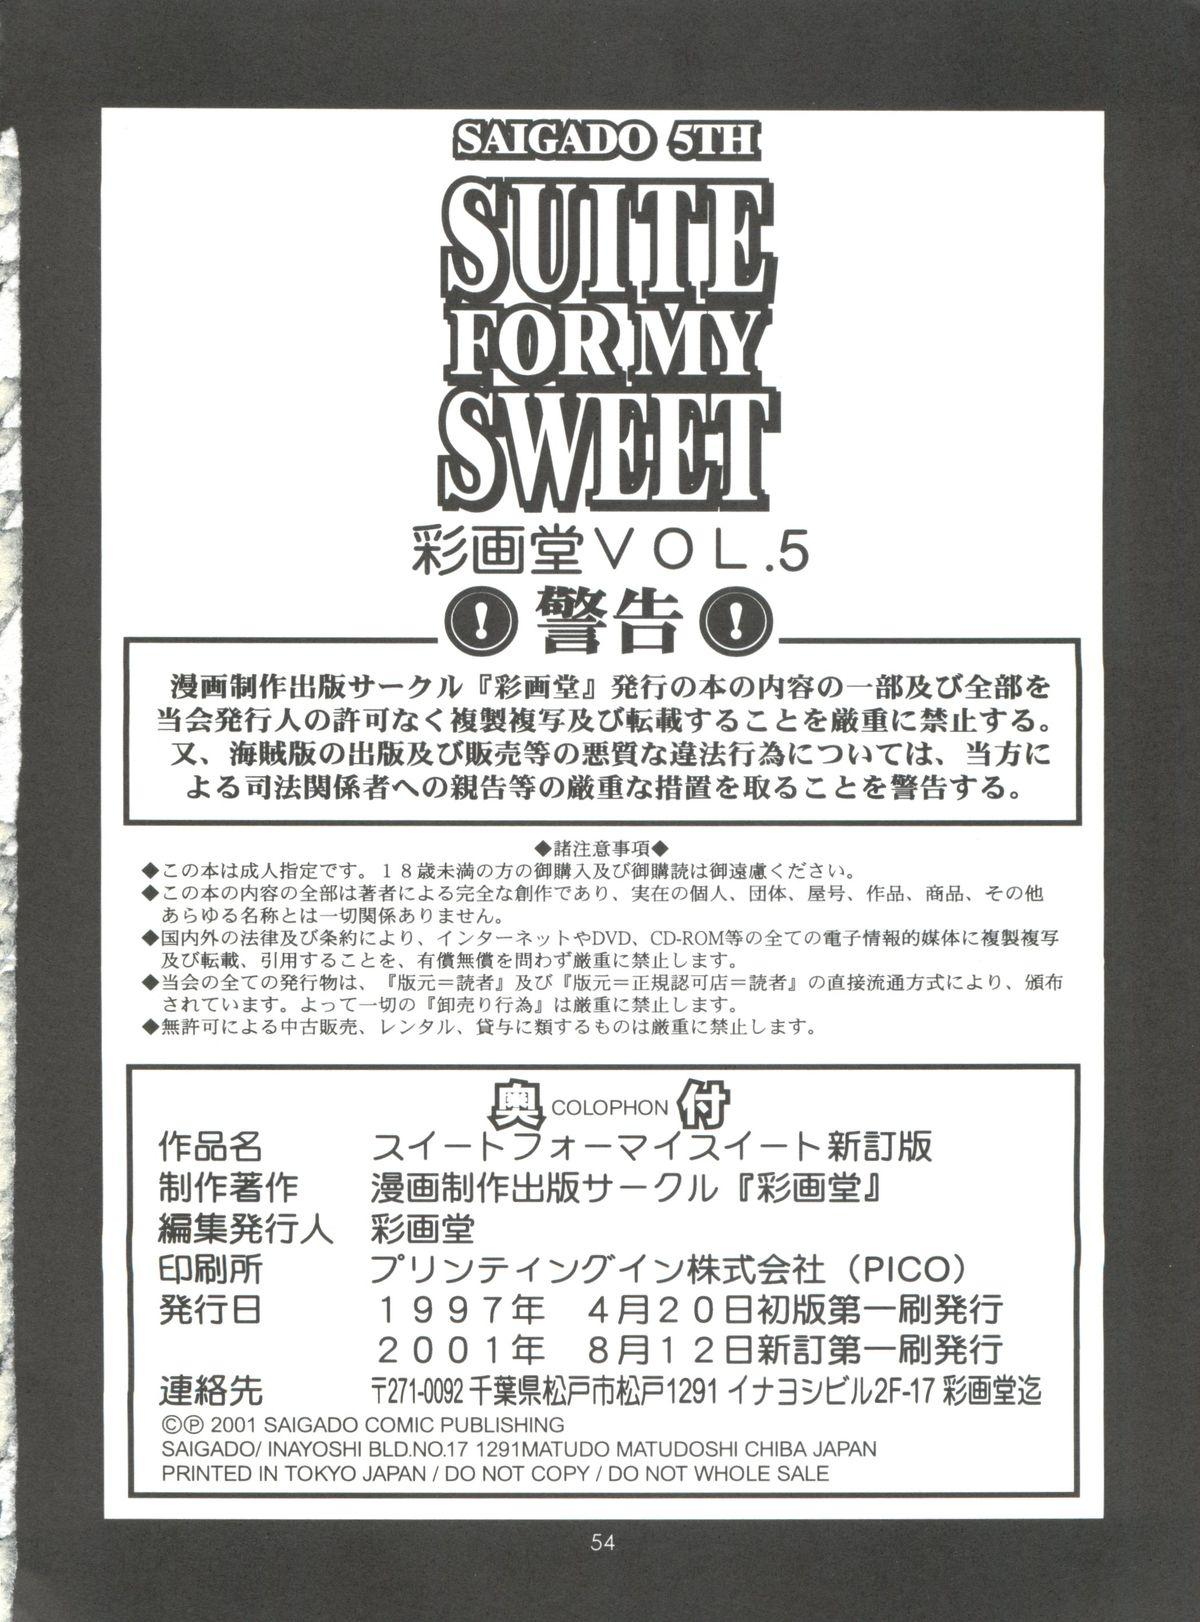 Suite For My Sweet Shinteiban 53